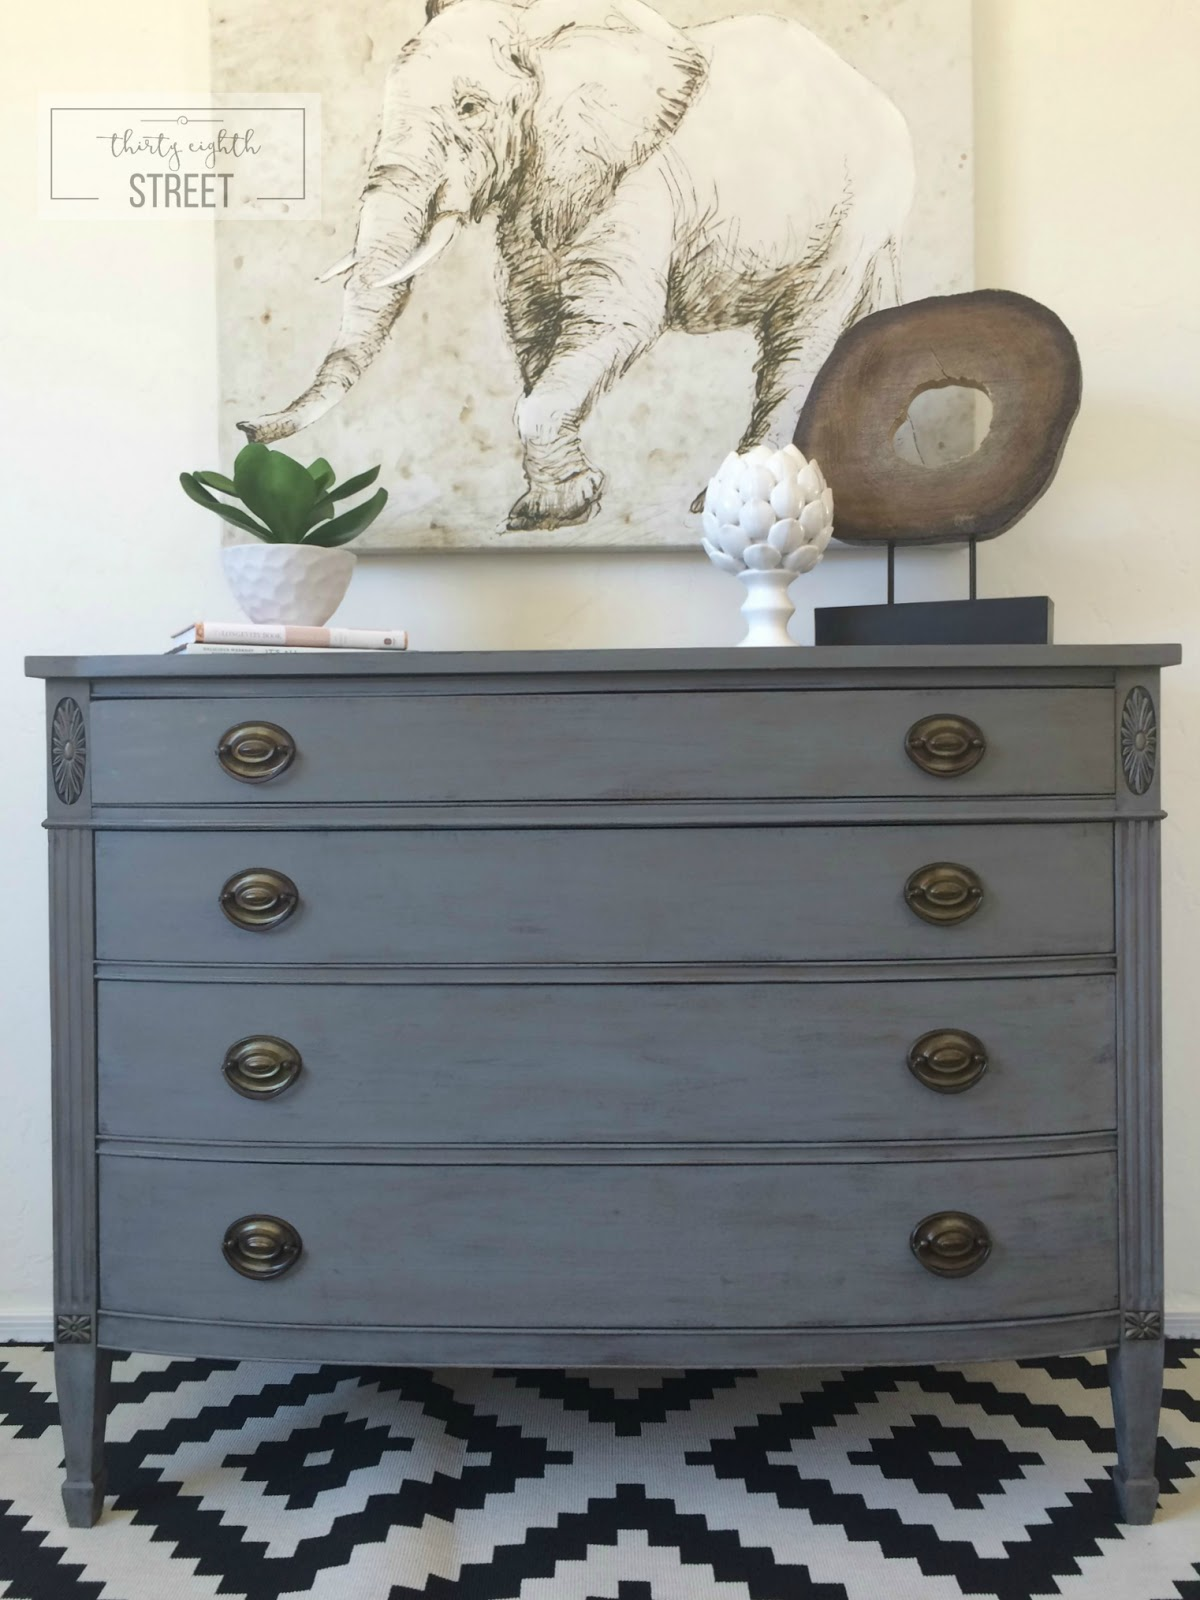 This refurbished wooden dresser with metal handles is rustic and modern.